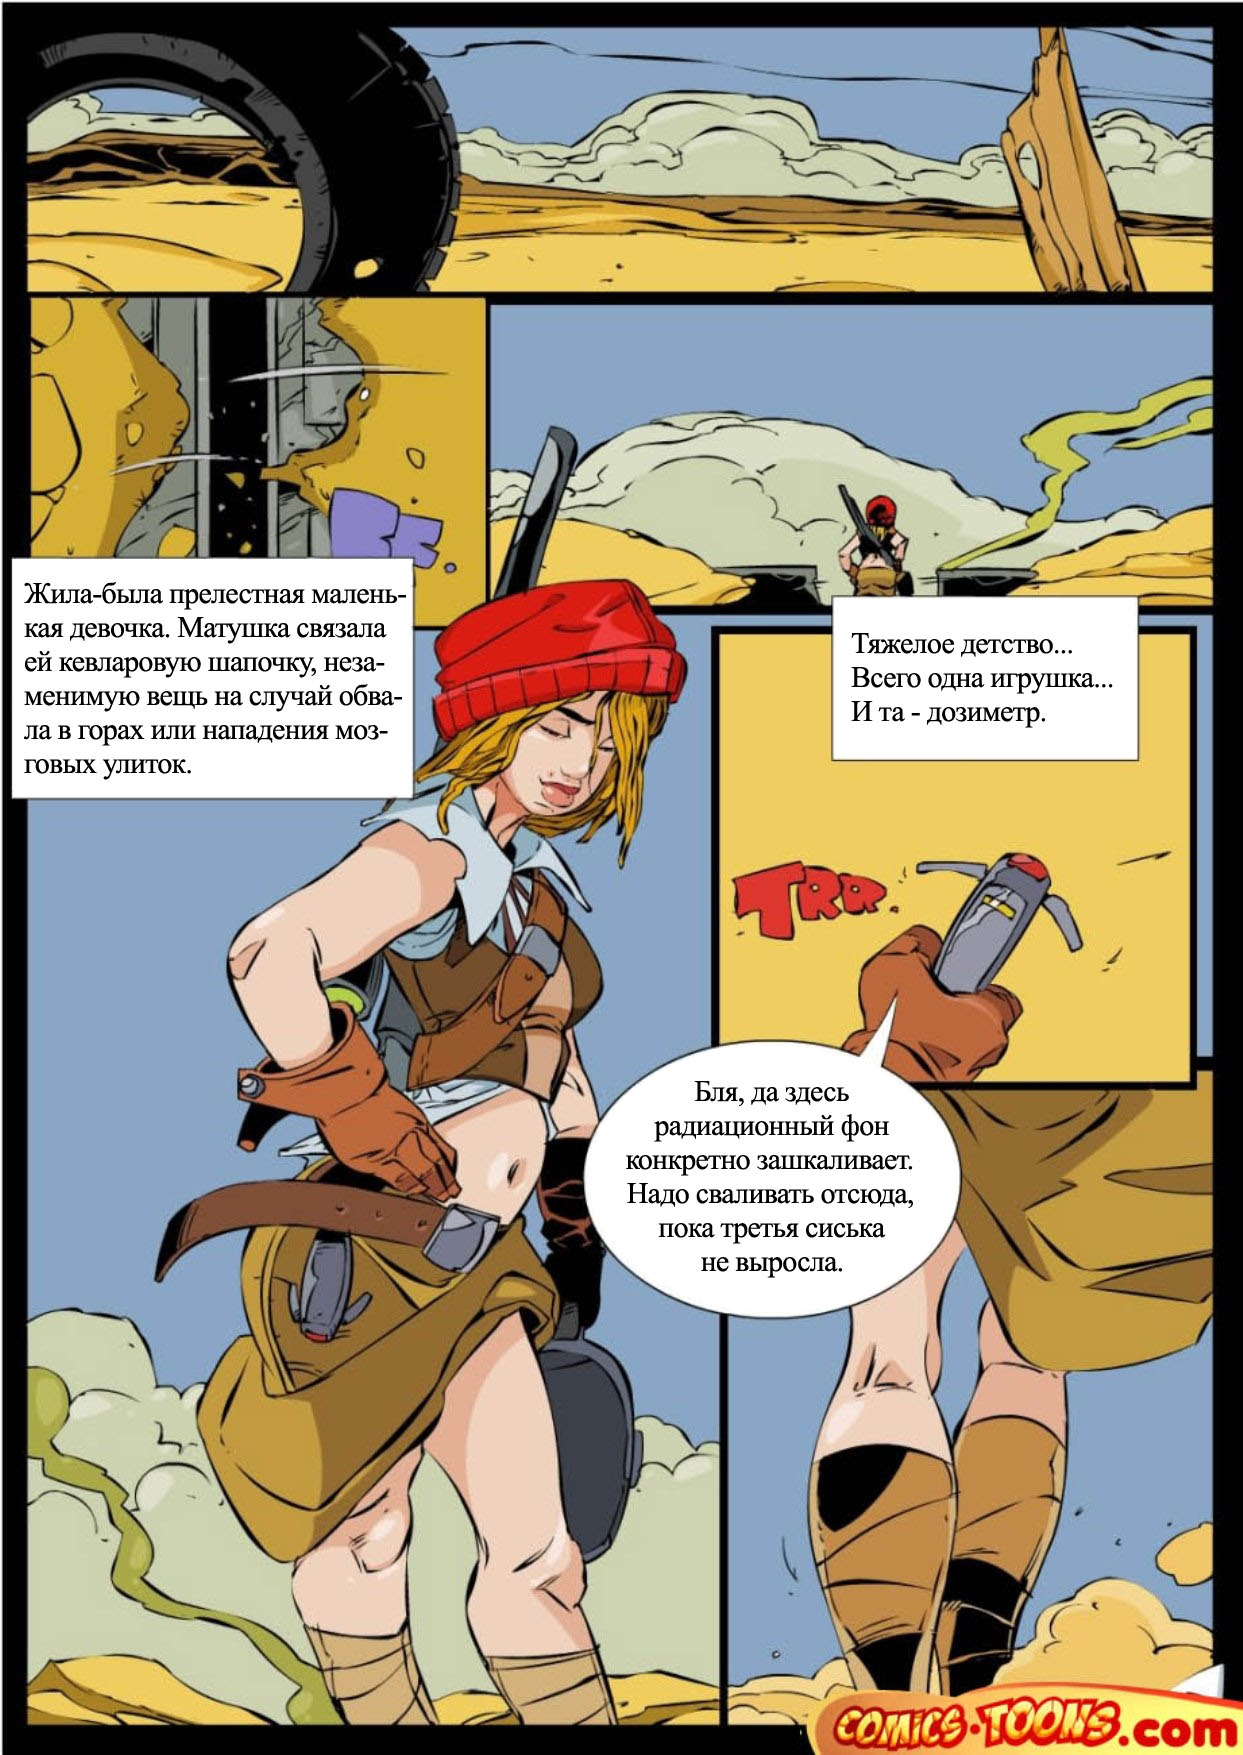 SureFap xxx porno Little Red Riding Hood - [Comics-Toons][Okunev] - The Postapocalyptic Red Riding Hood